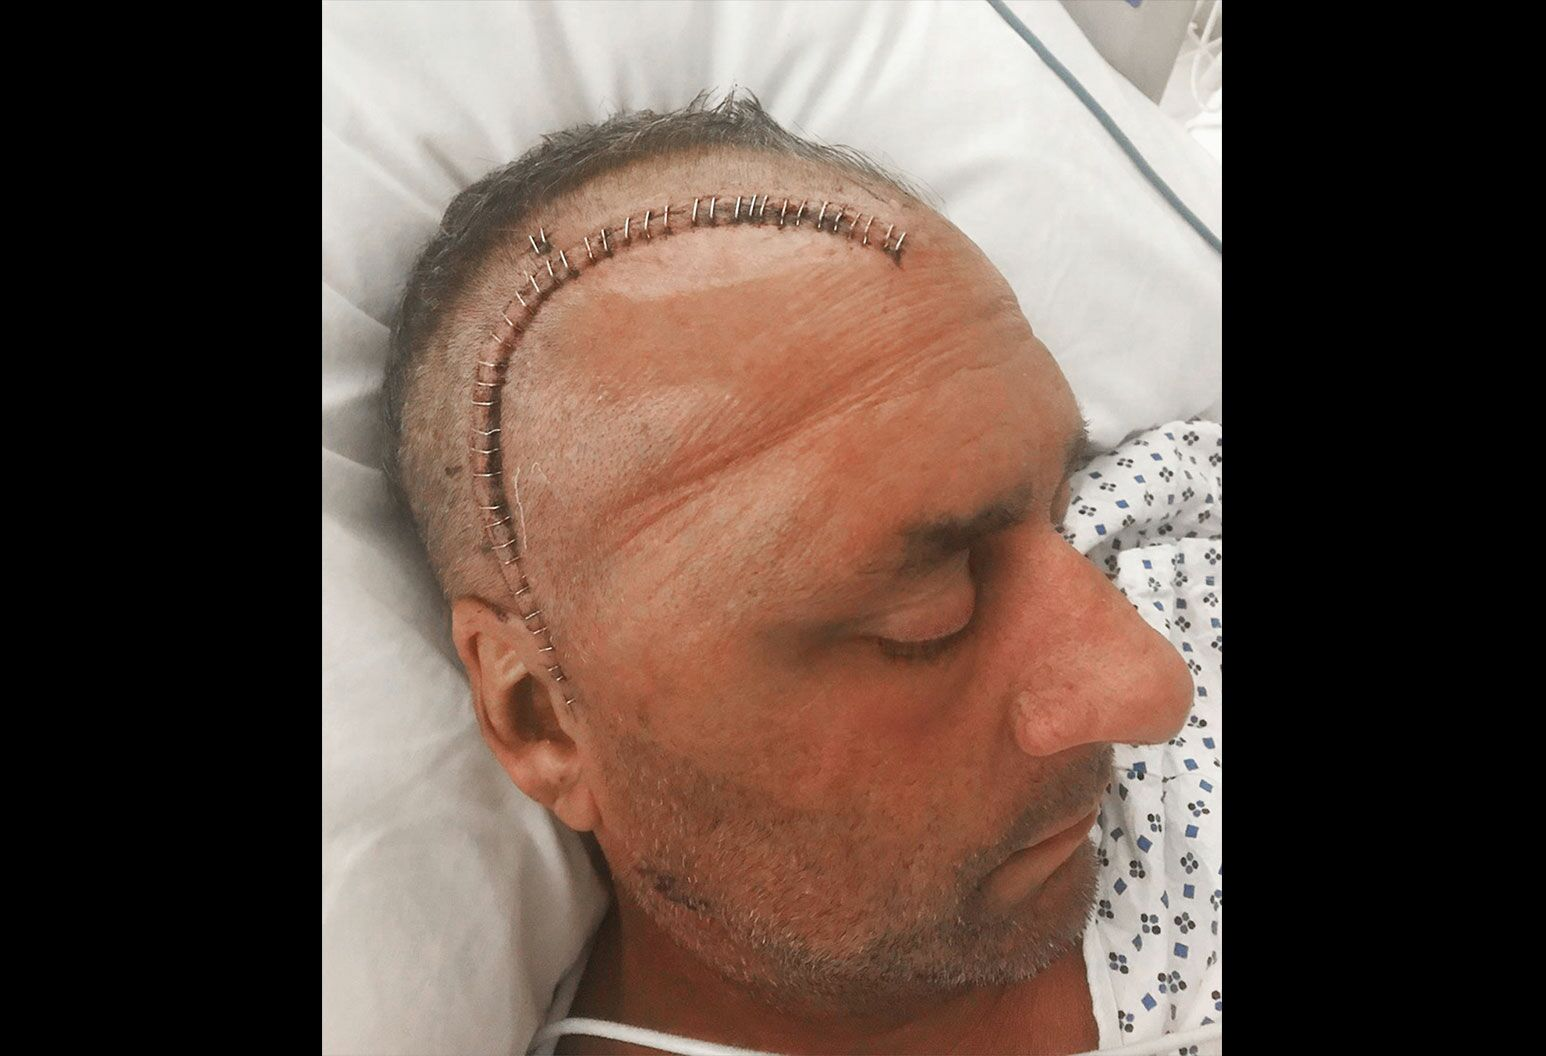 A man with a half shaven head rests his head on a pillow. Along his scalp is staples over a recently sutured wound.